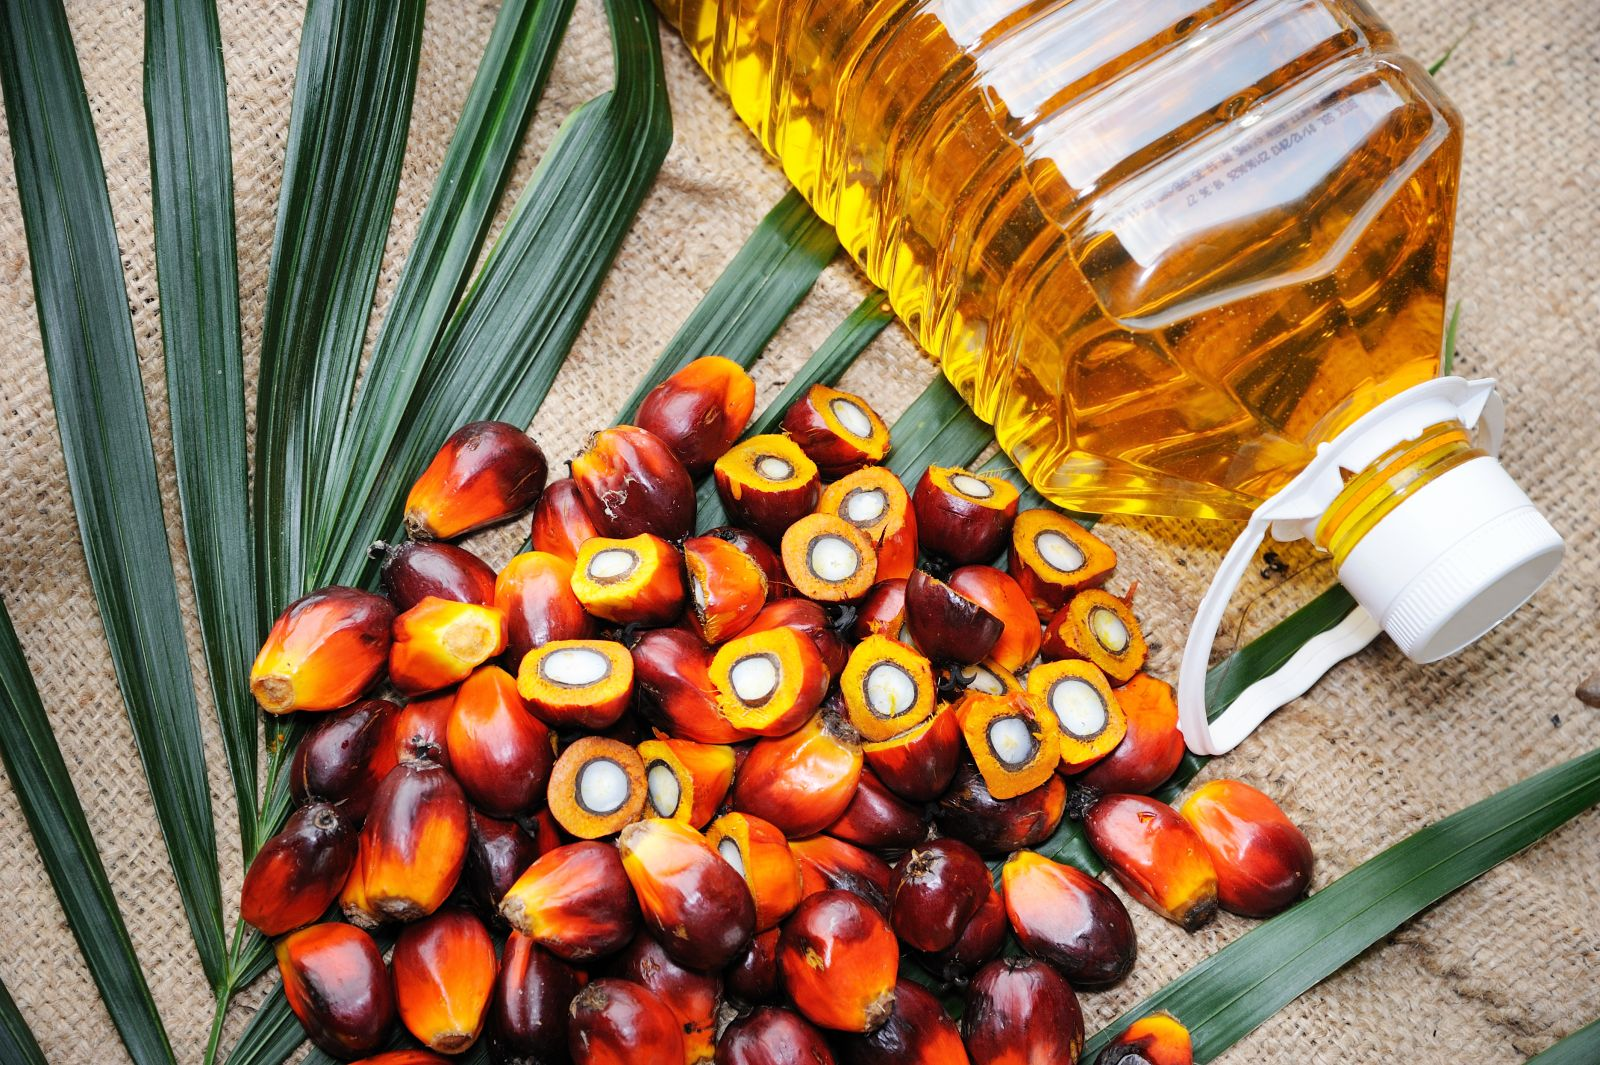 Is Palm Oil Any Good For You? Telugu Food And Diet News